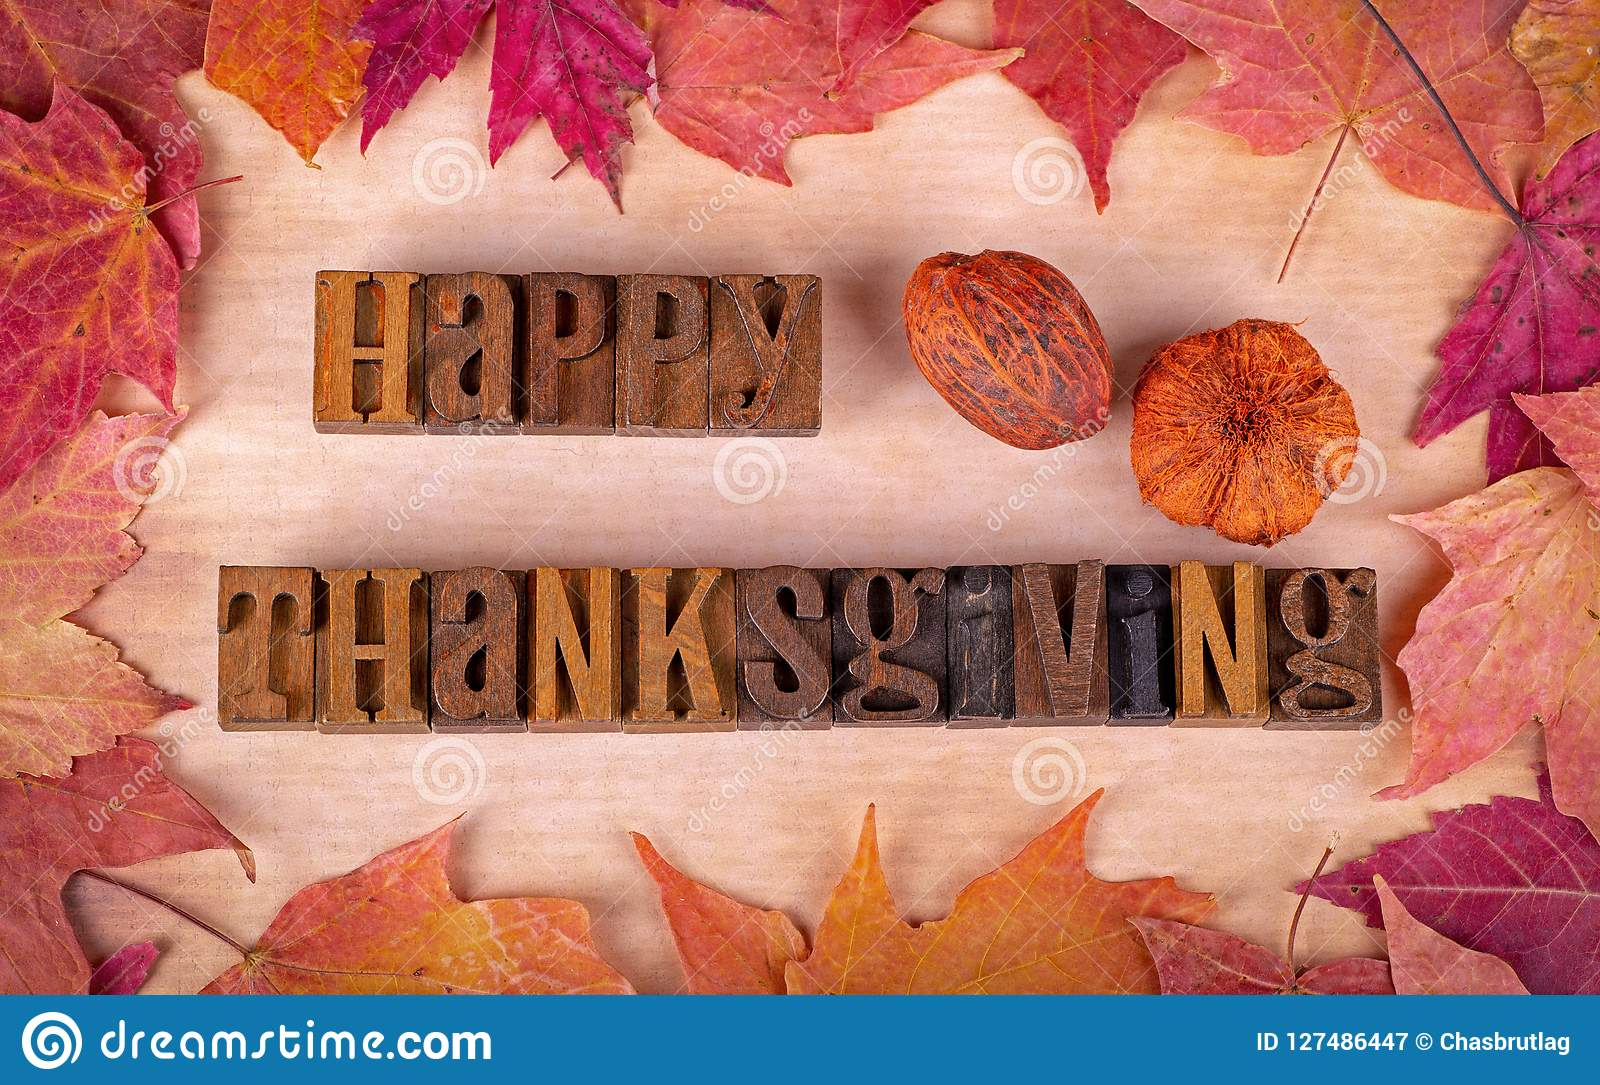 happy thanksgiving text with colorful autumn leaf border stock image